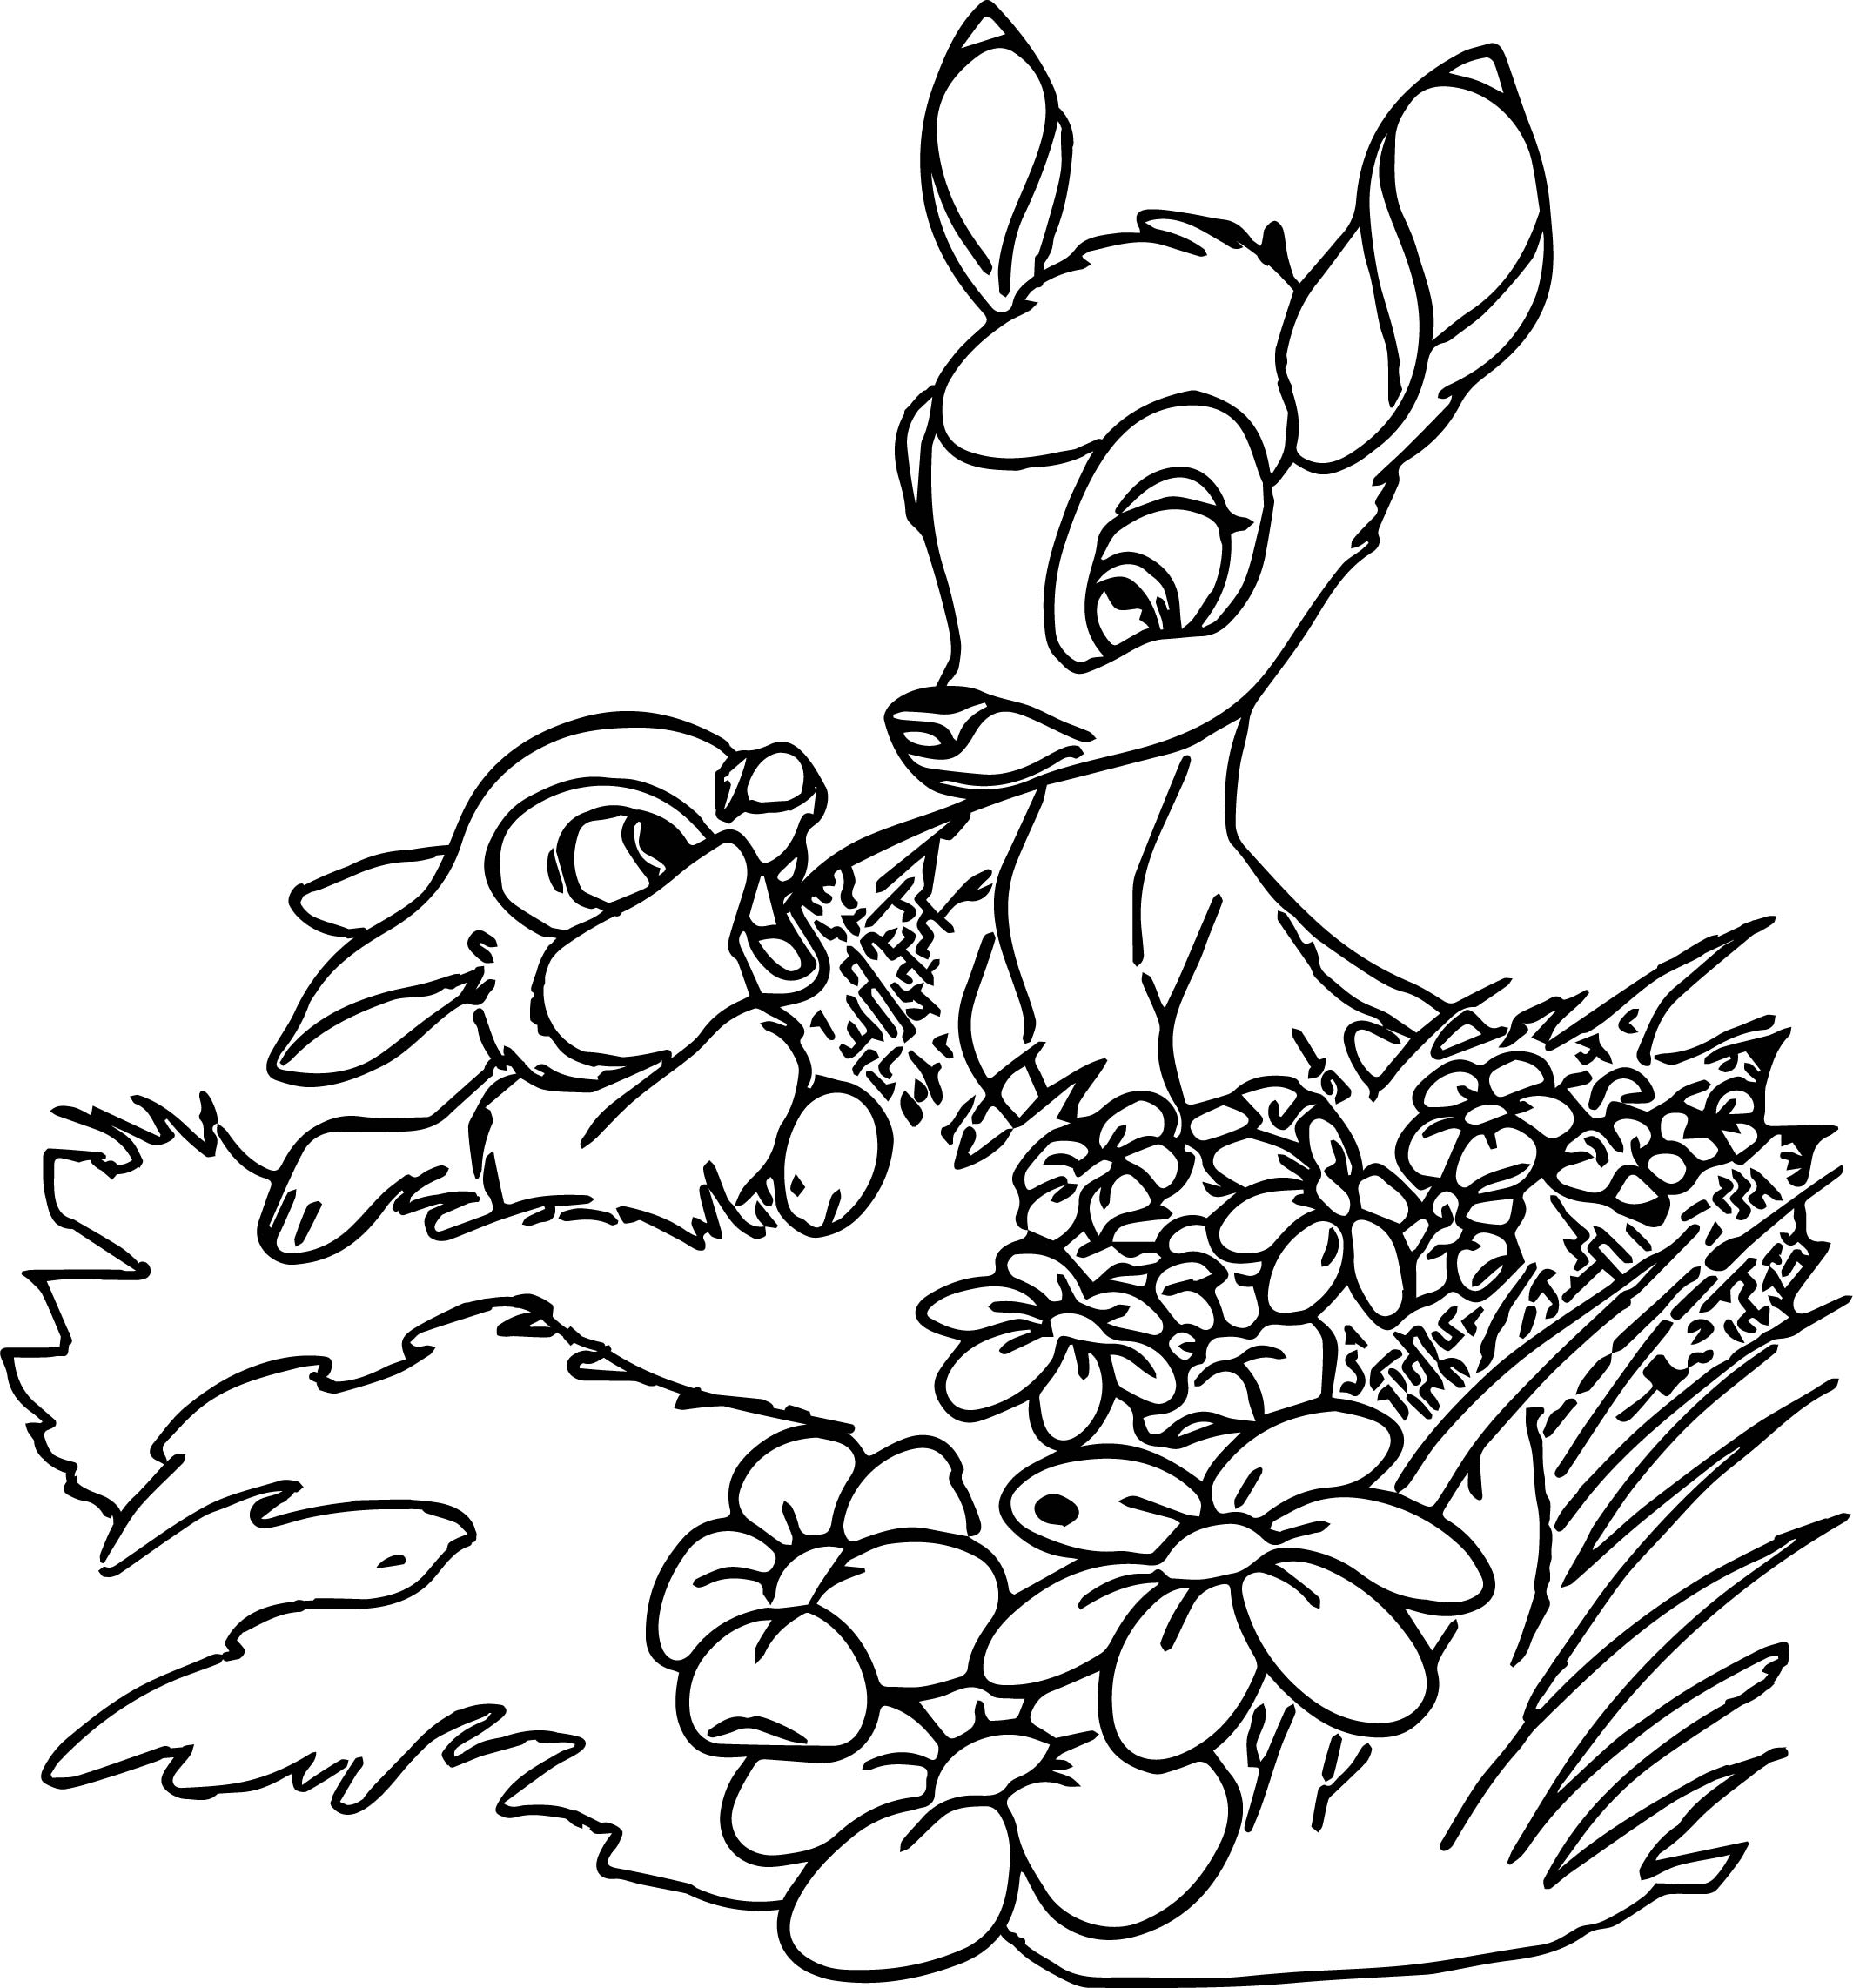 Bambi weeds coloring pages for Bambi coloring page